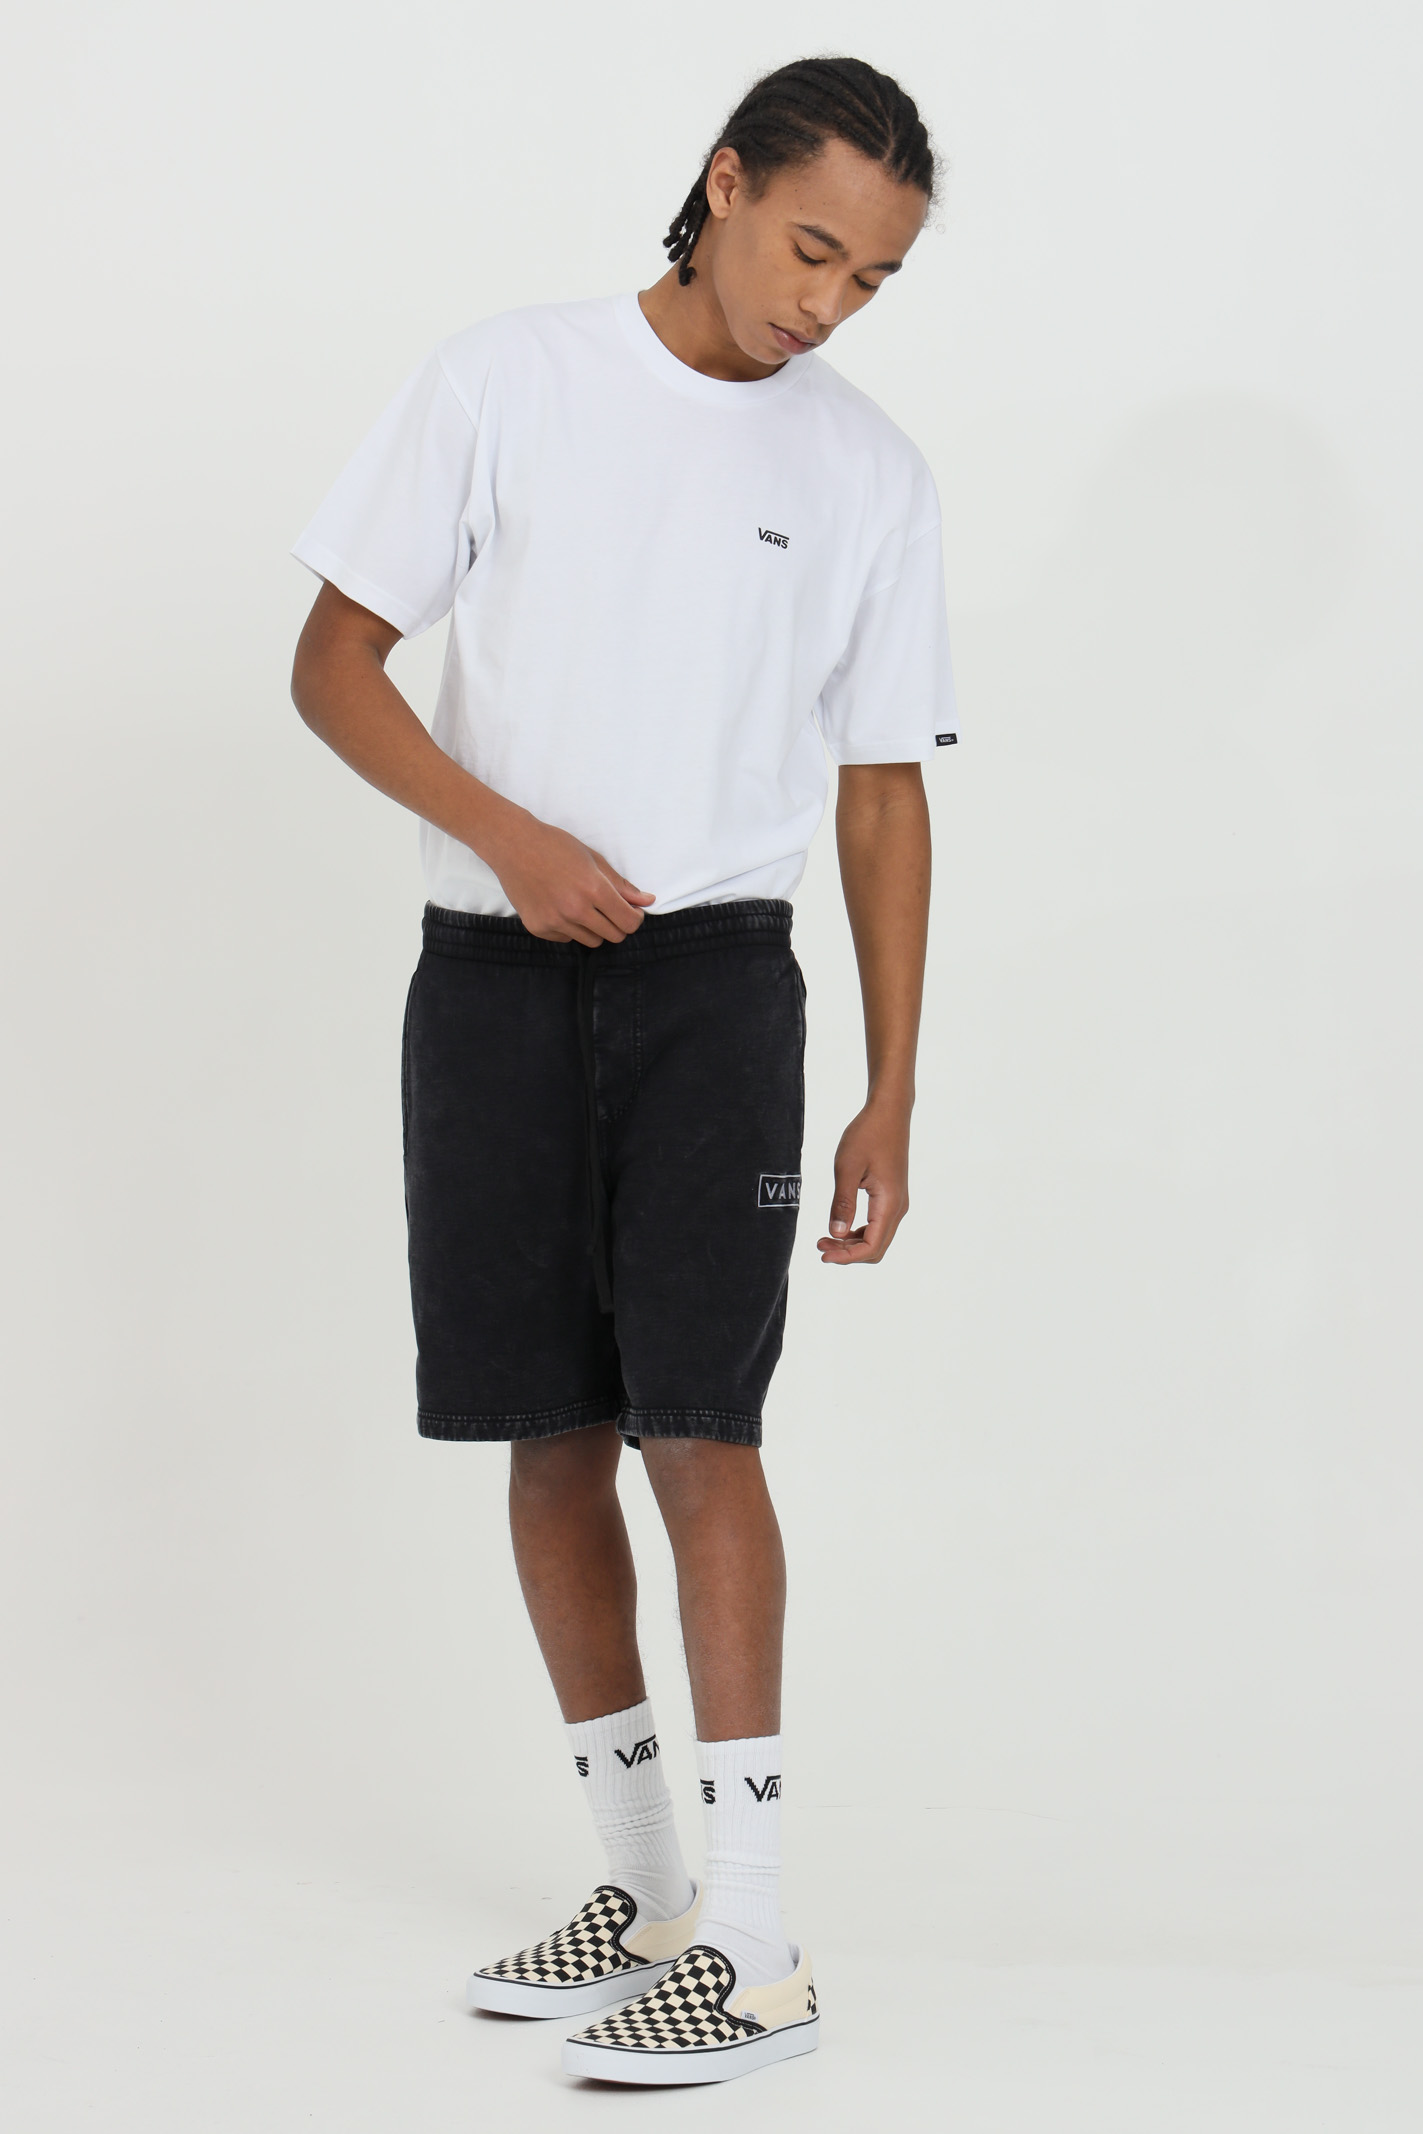 Black shorts with elastic waistband and size pockets. Over size model. Vans  VANS | Shorts | VN0A5DYLBLK1BLK1